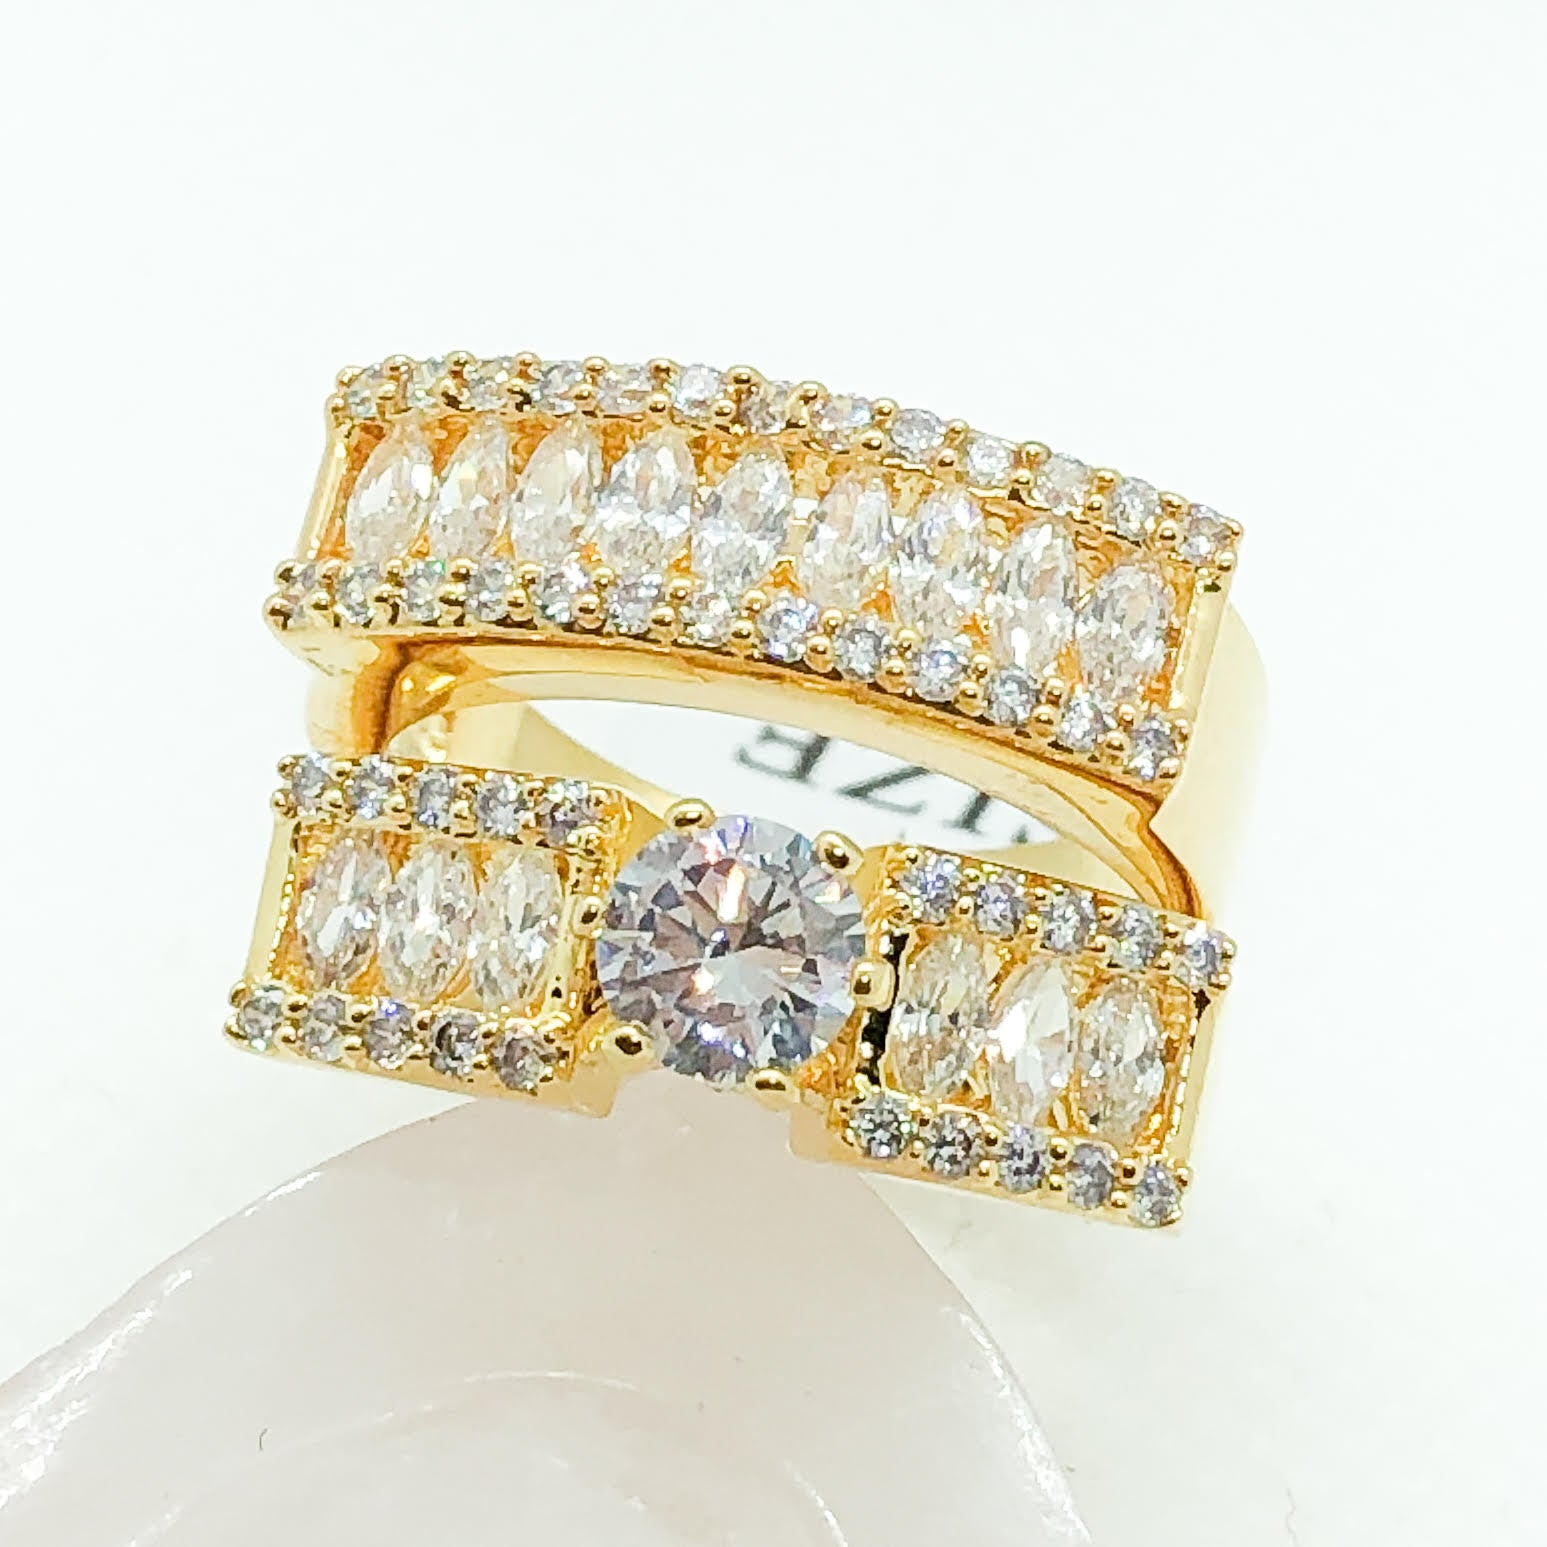 ID:R3912 Women Jewelry 18K Yellow Gold GF Breathtaking Vintage Engagement Wedding Bridal Diamonique Band 2pcs/Set Ring